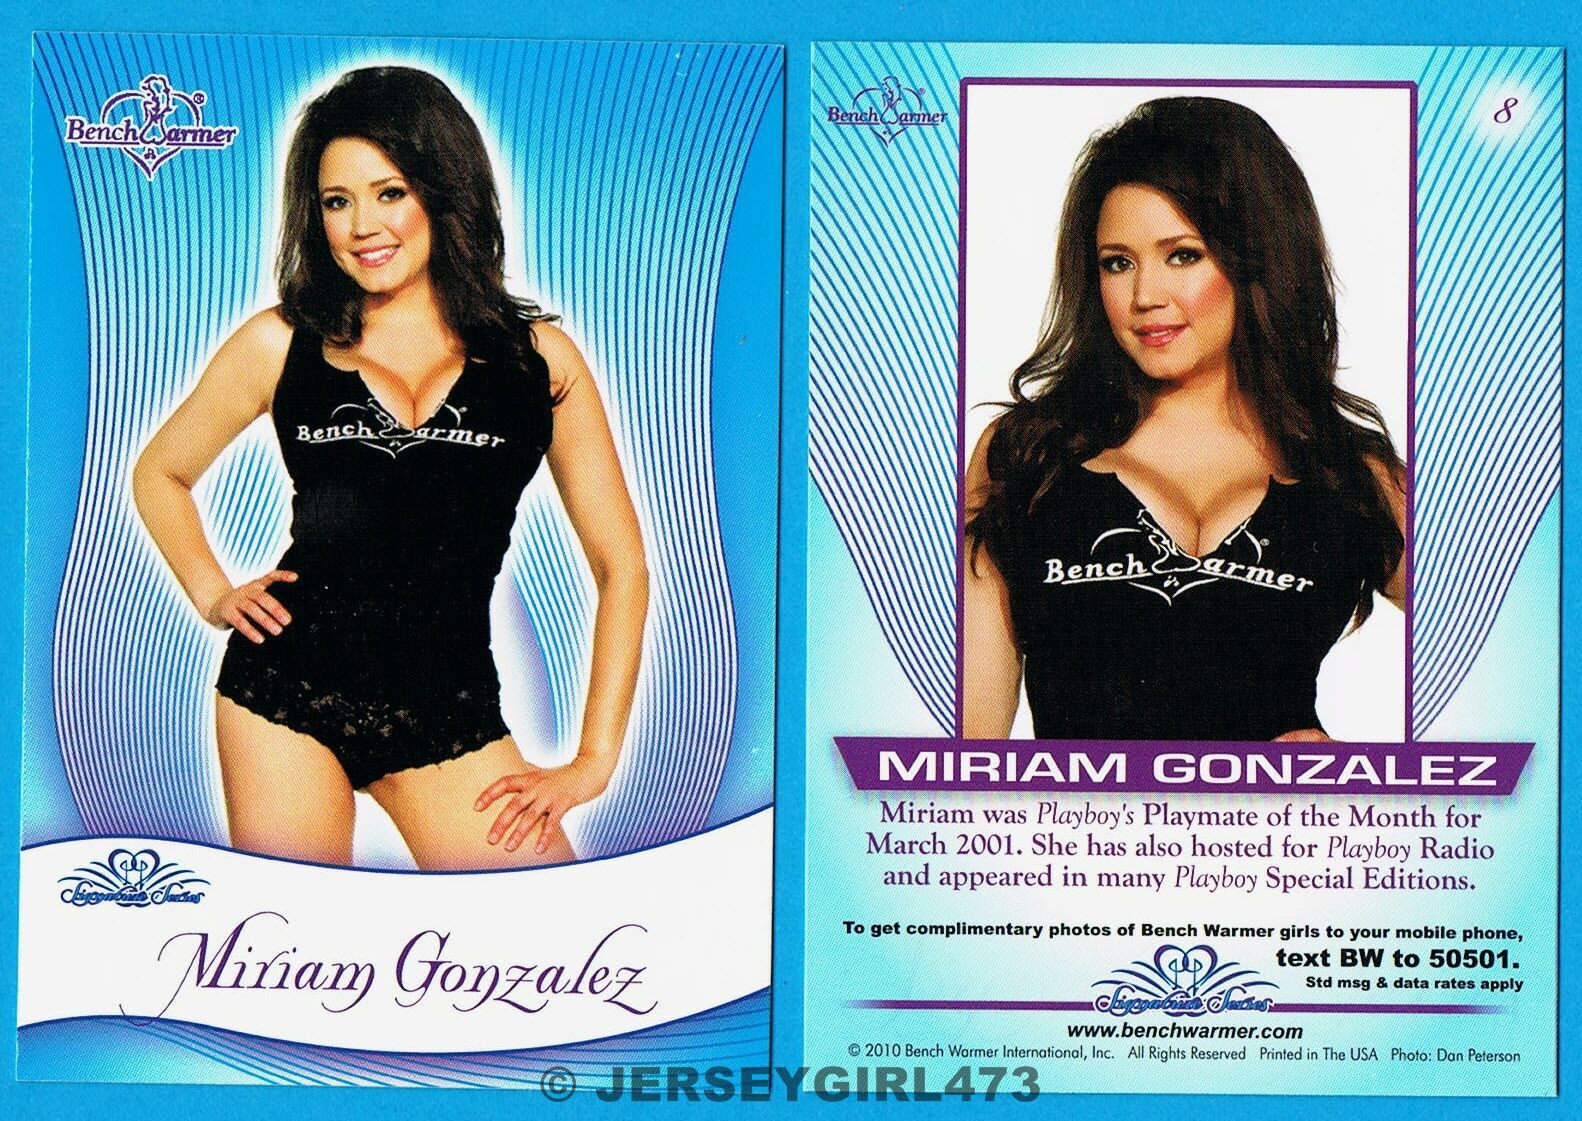 Miriam Gonzalez 2010 Bench Warmer Signature Series Card #8